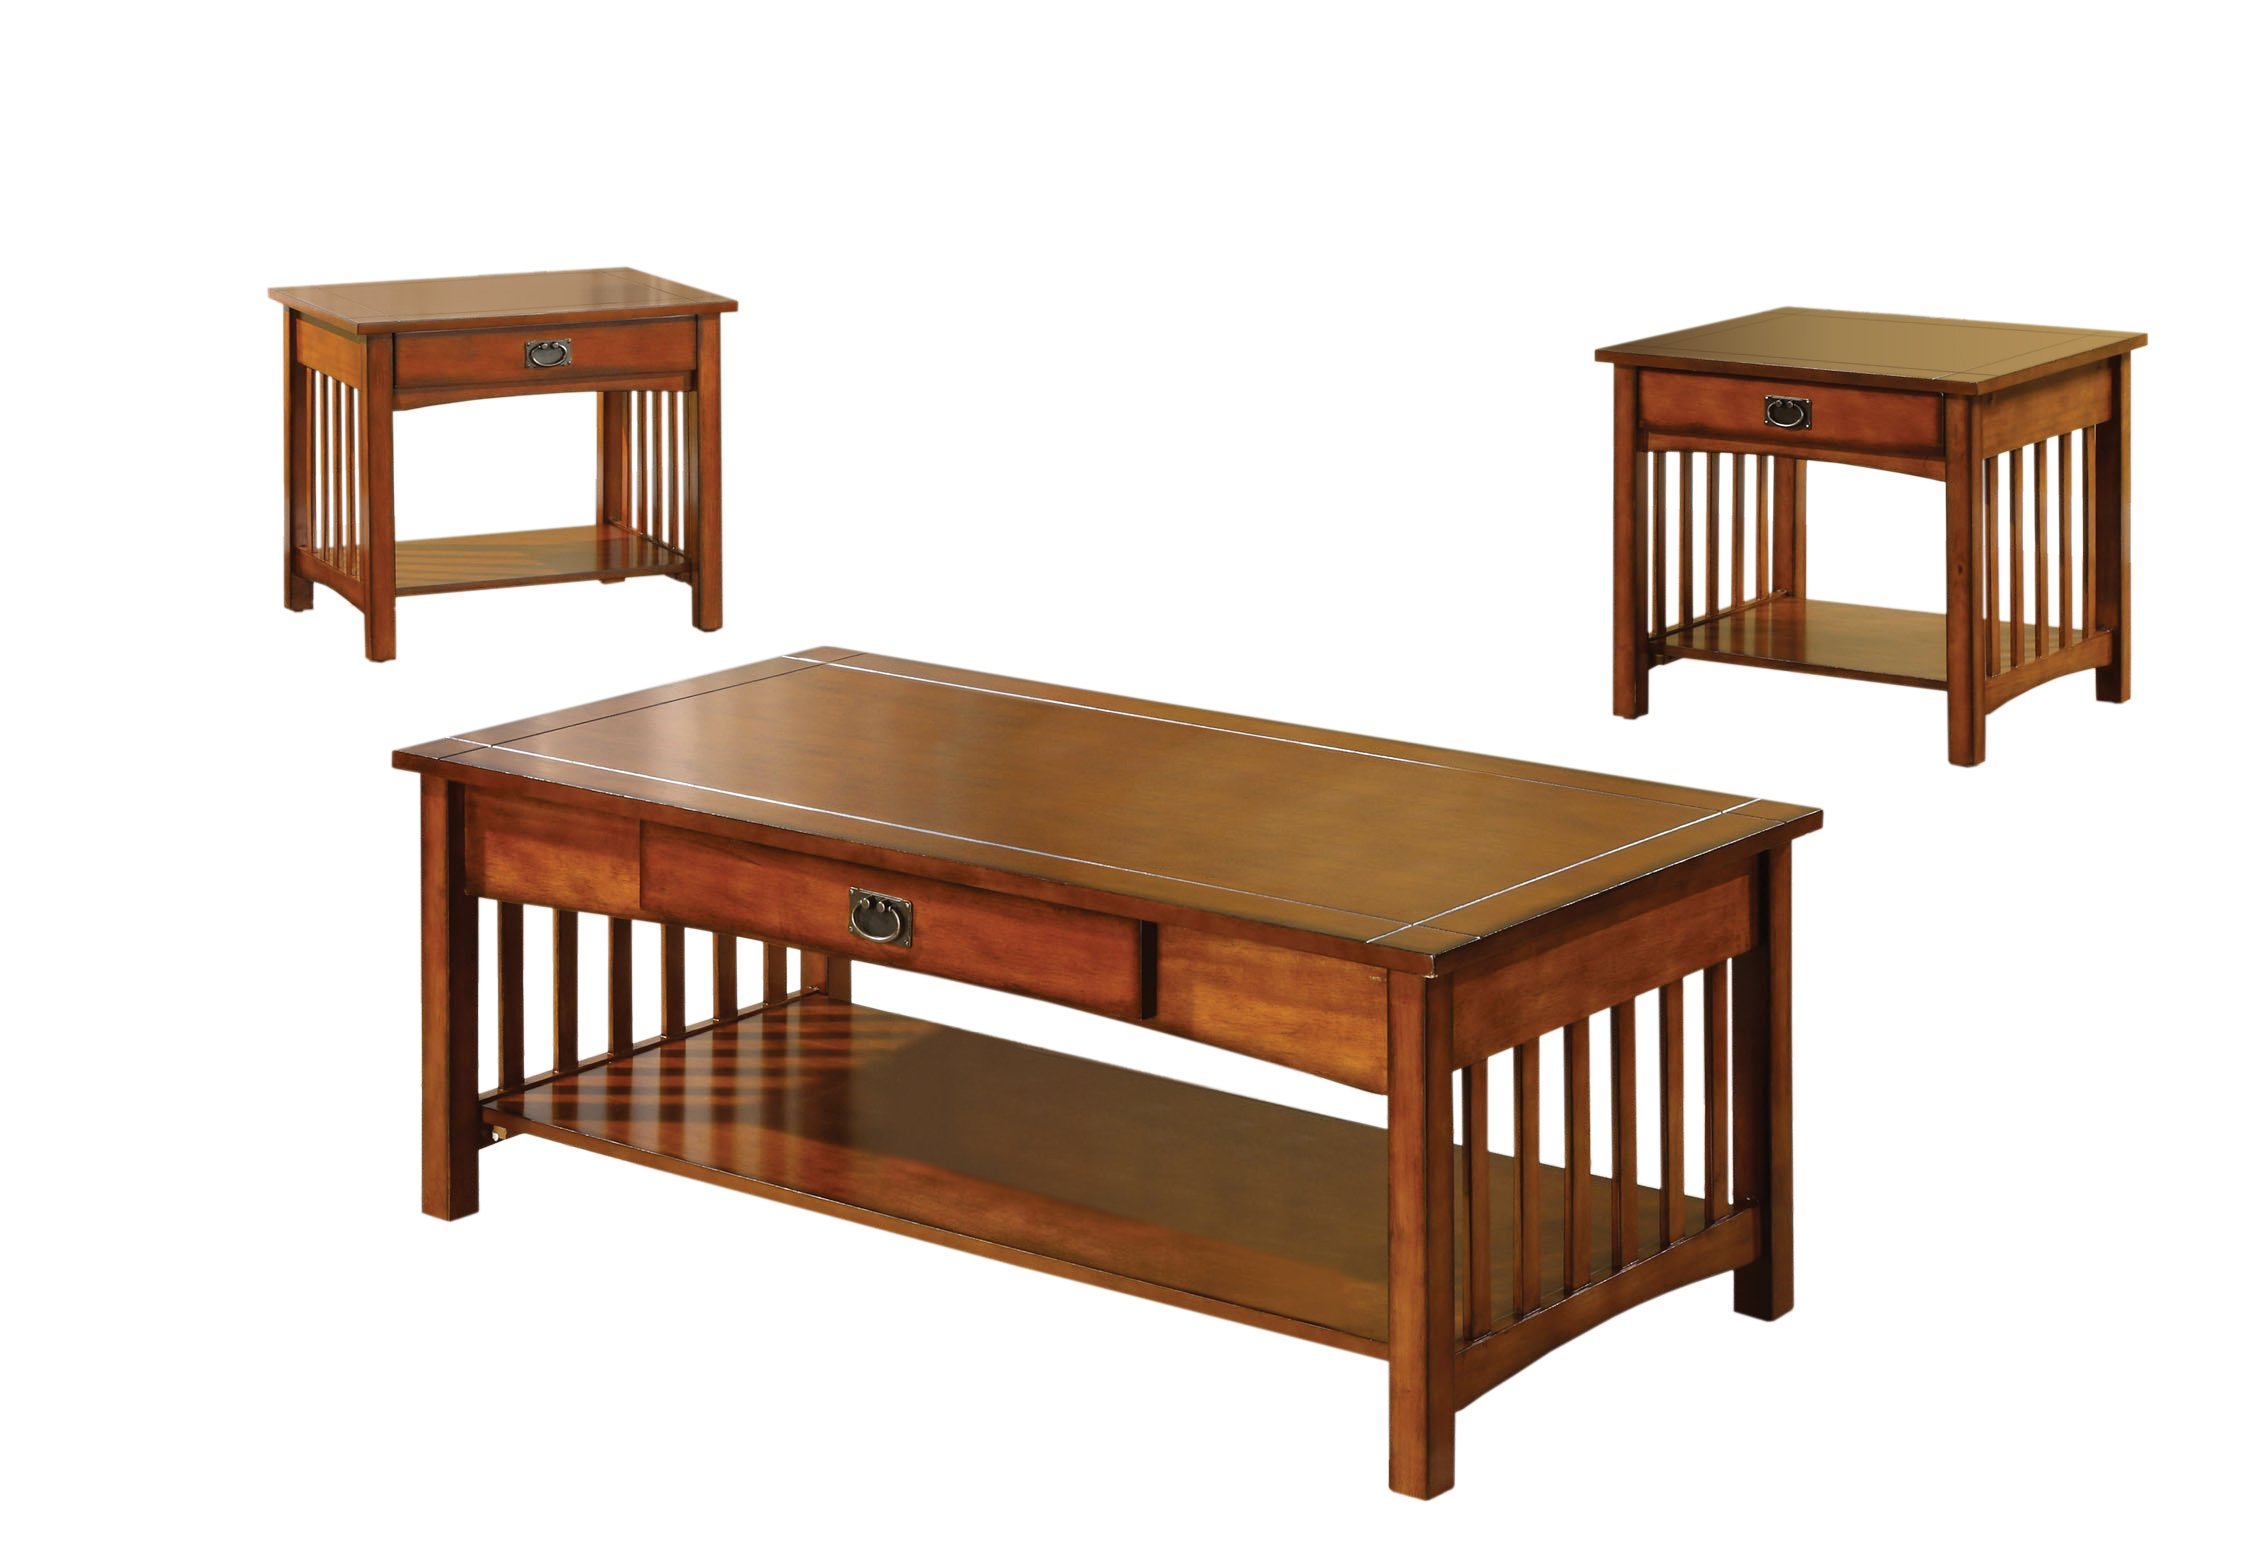 Furniture of America Francia 3-Piece Mission Style Table Set, Antique Oak Finish by Furniture of America